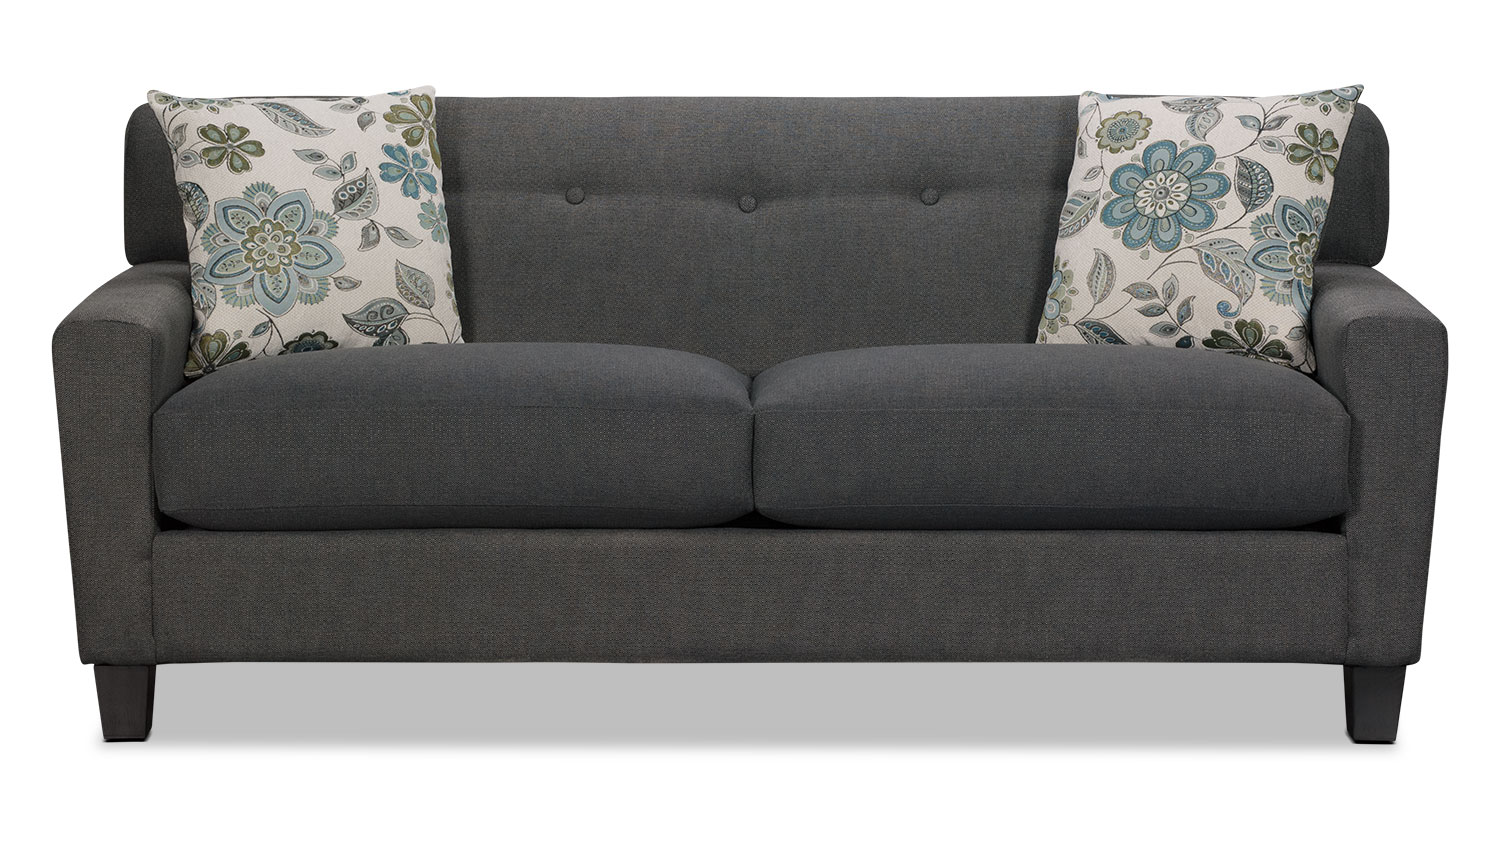 Aubrey Linen-Look Fabric Sofa - Charcoal